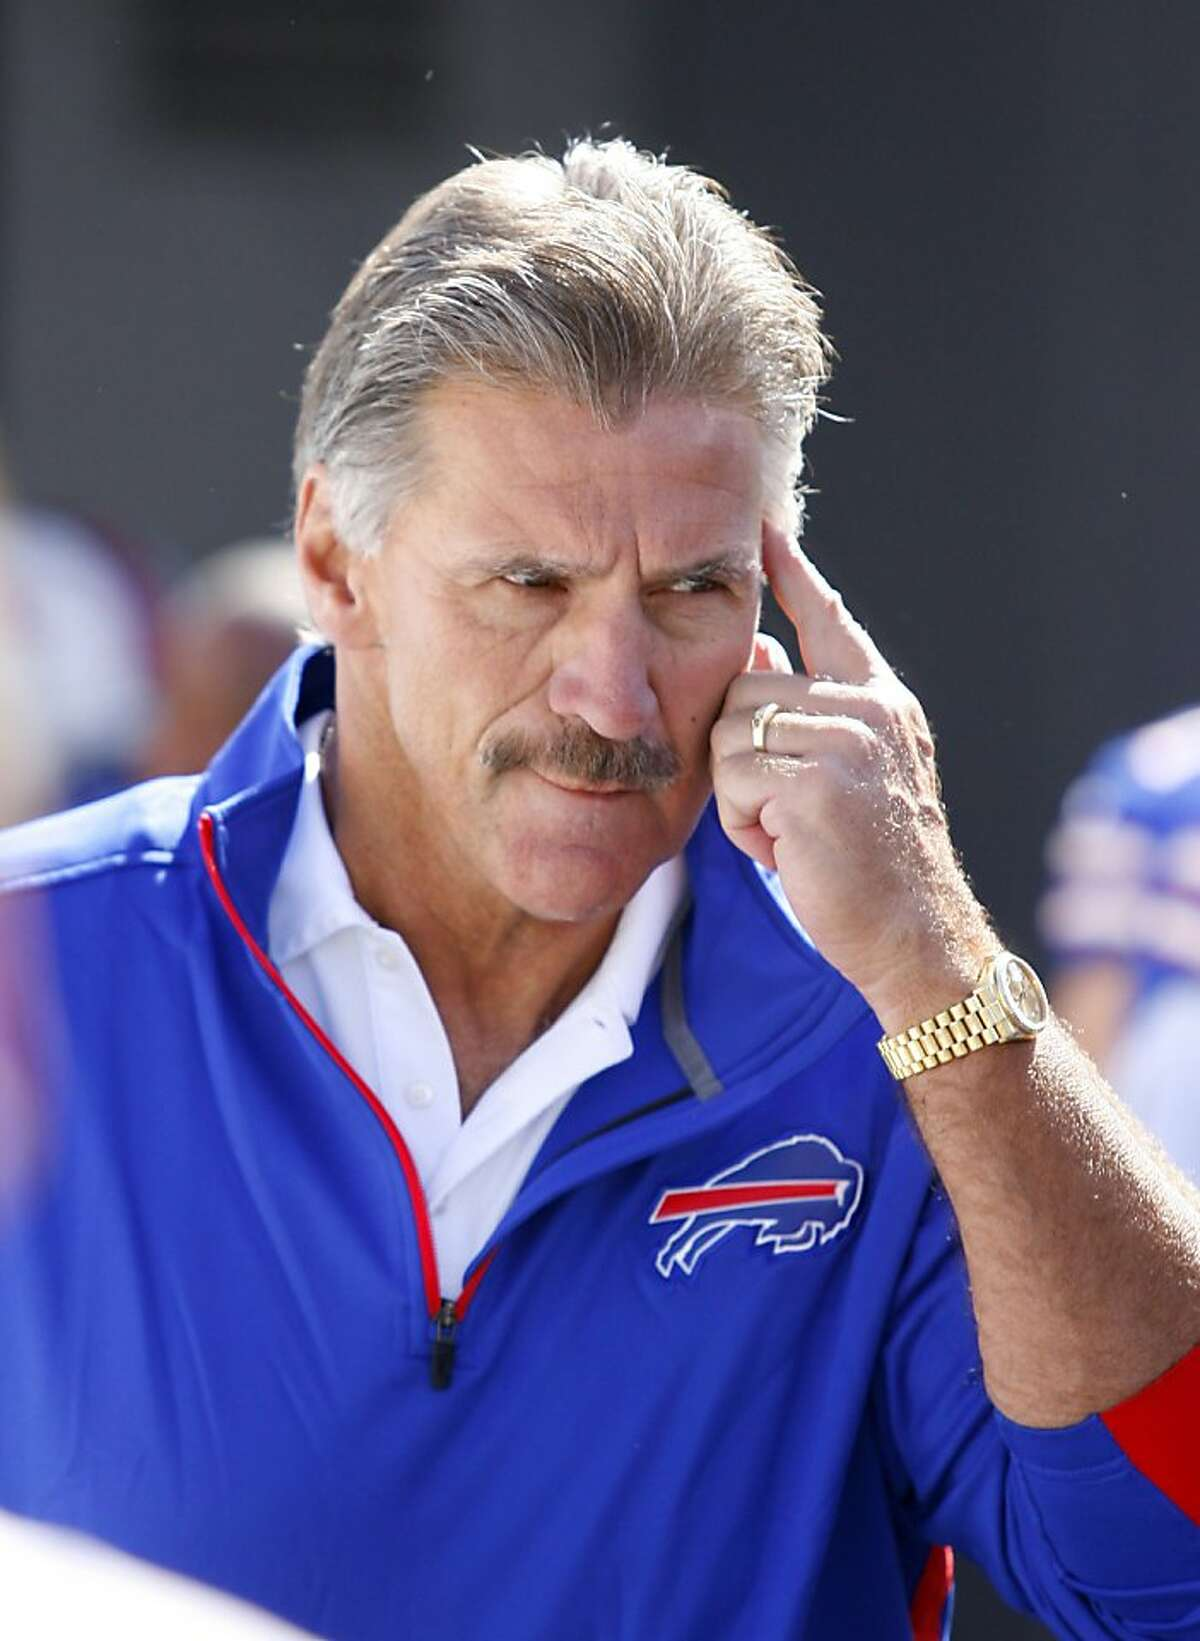 Buffalo Bills' defensive coordinator Dave Wannstedt heads onto the field before playing the Kansas City Chiefs in an NFL football game in Orchard Park, N.Y., Sunday, Sept. 16, 2012. (AP Photo/Bill Wippert)